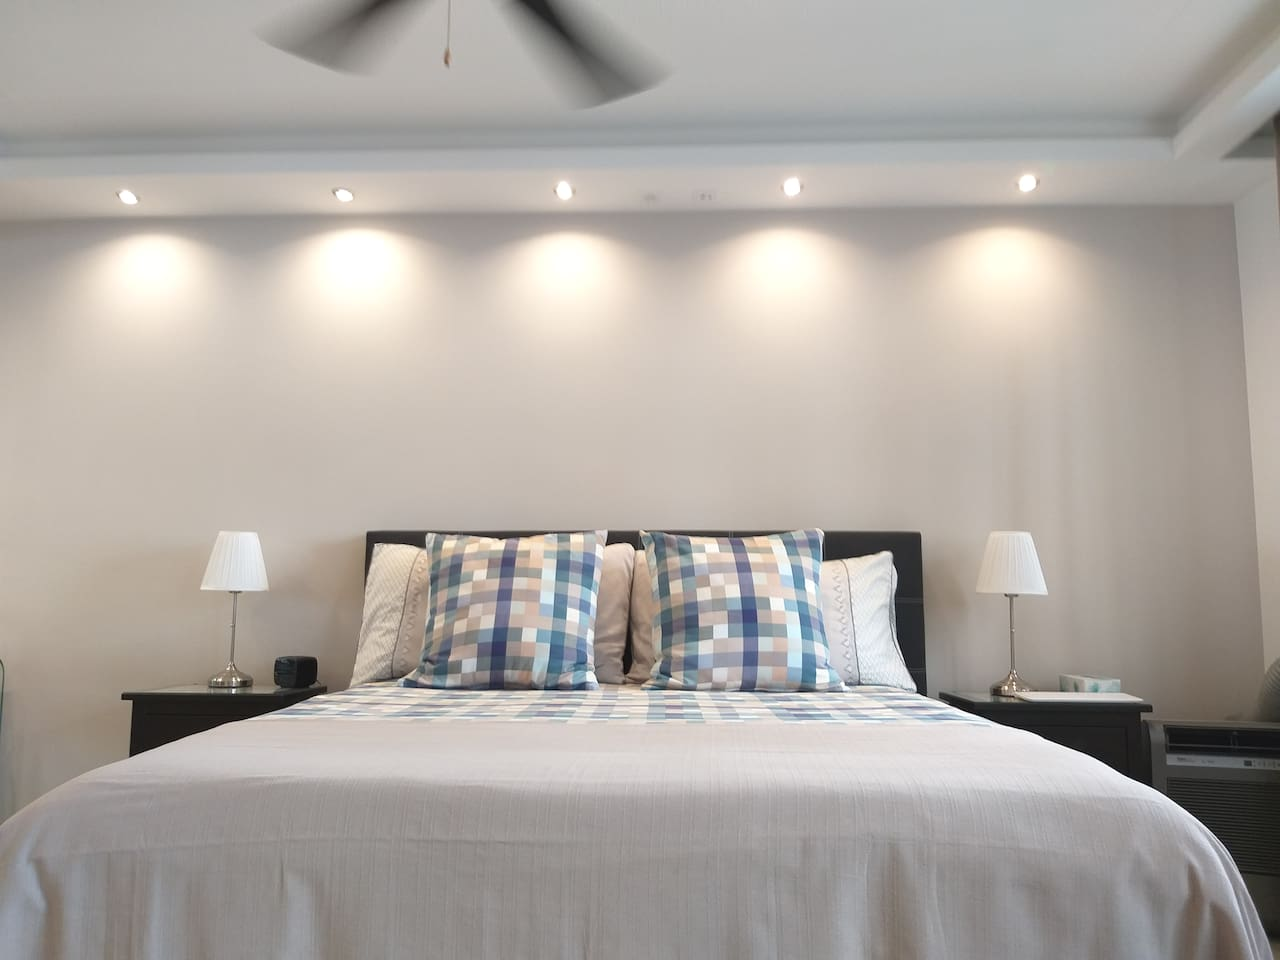 2 beds 1.80 x 2.00  meters1.60 x 2.00  shape memory  2 ceiling fans and air conditioning